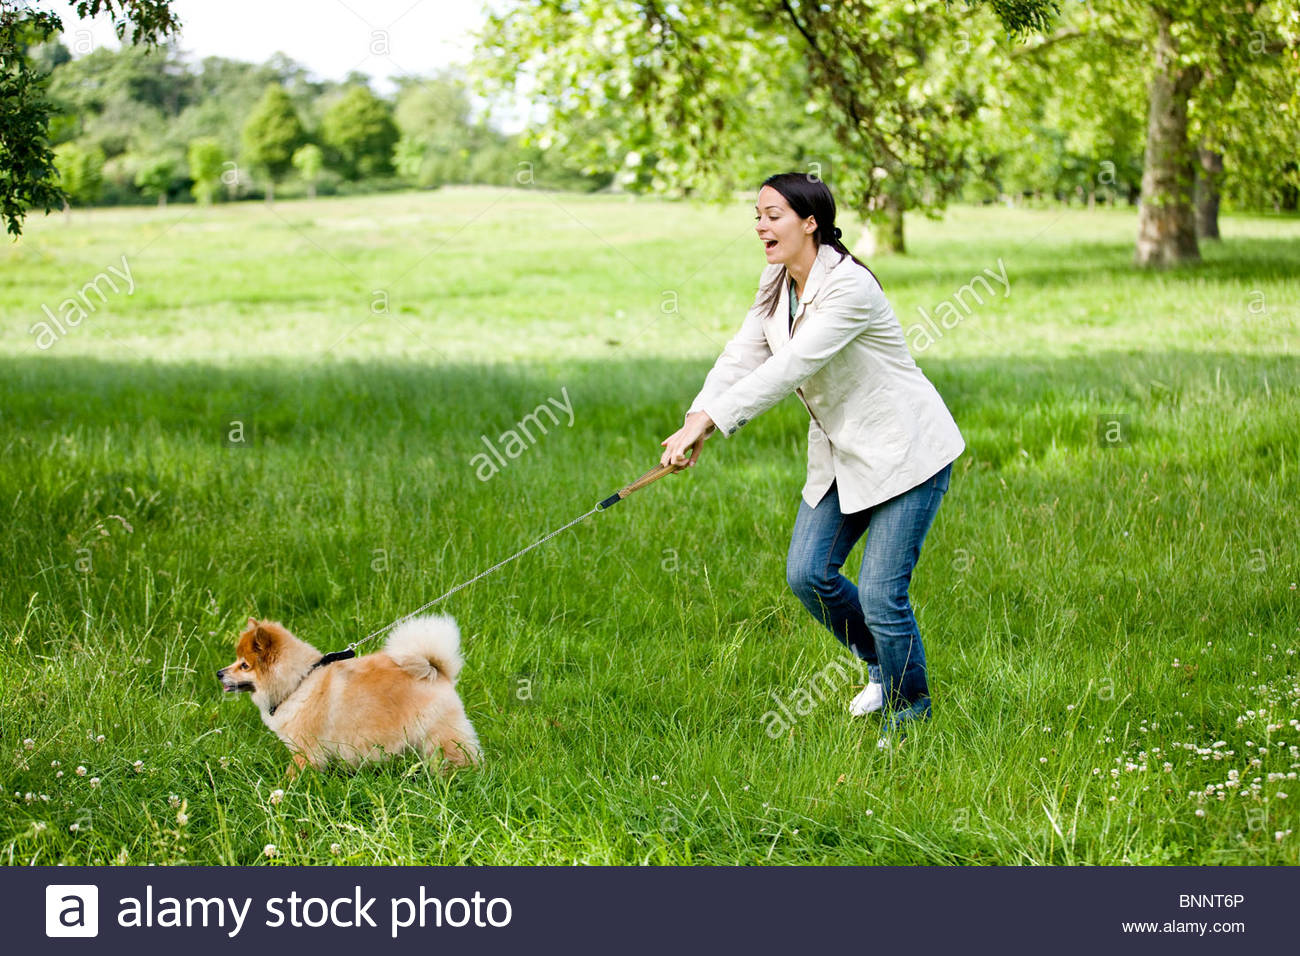 A young woman being pulled along by her dog - Stock Image